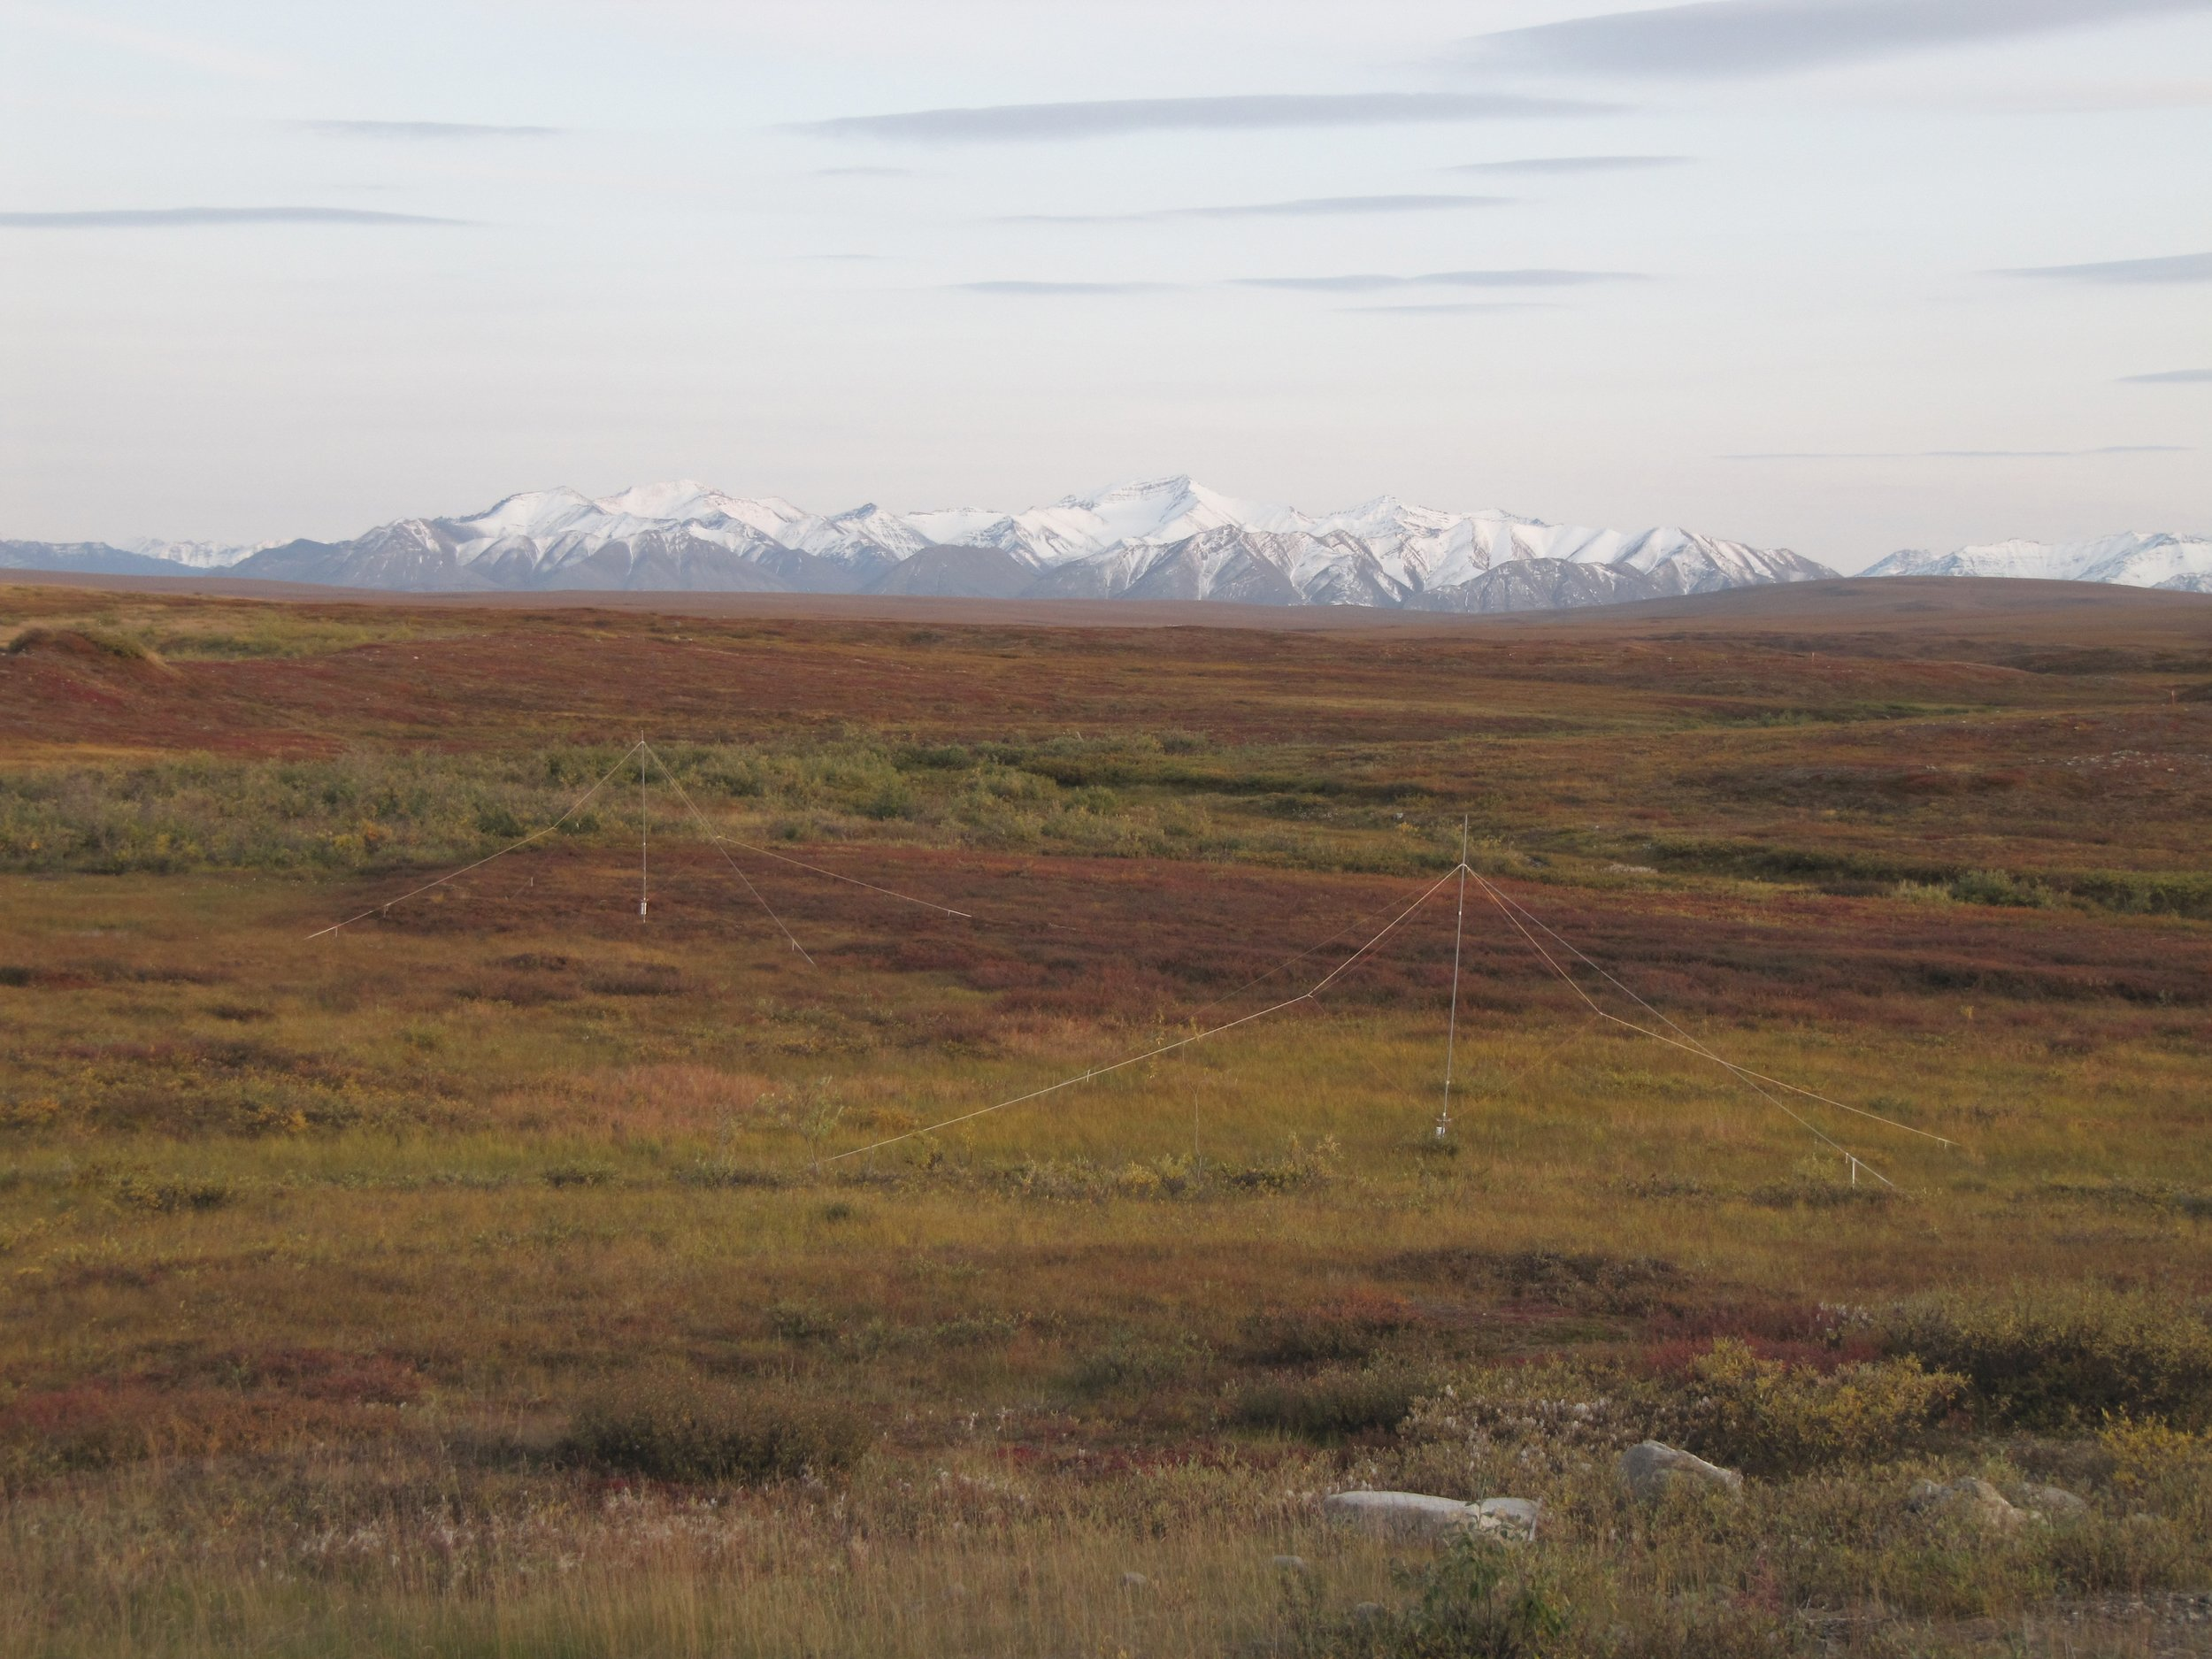 Looking south at the Brooks Range from Toolik, the changing colors indicate the changing seasons. Photo by Jason Neely